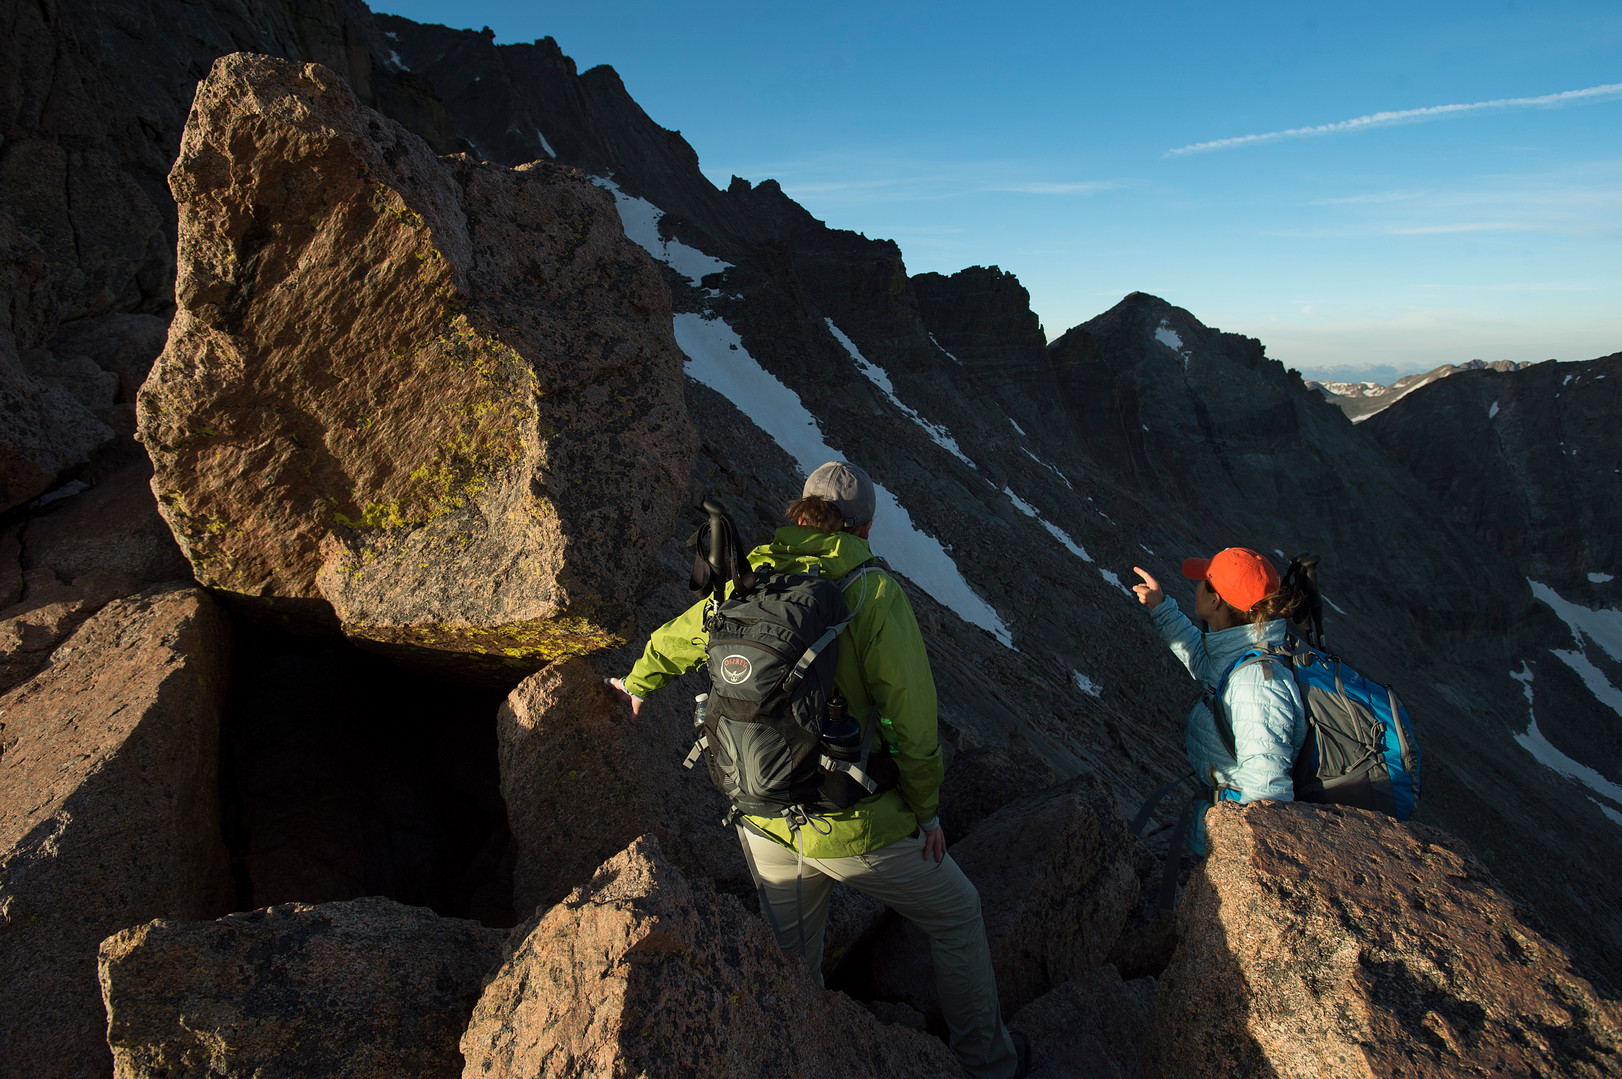 Climbers look on to the next parts of the Keyhole Route from the Keyhole on Longs Peak in Rocky Mountain National Park on Friday, July 19, 2017. The route's namesake, the Keyhole, is a notch in a ridge above the Longs Peak boulder field. Climbing becomes much more difficult after this point with class 3 rock and exposed terrain leading to the summit.